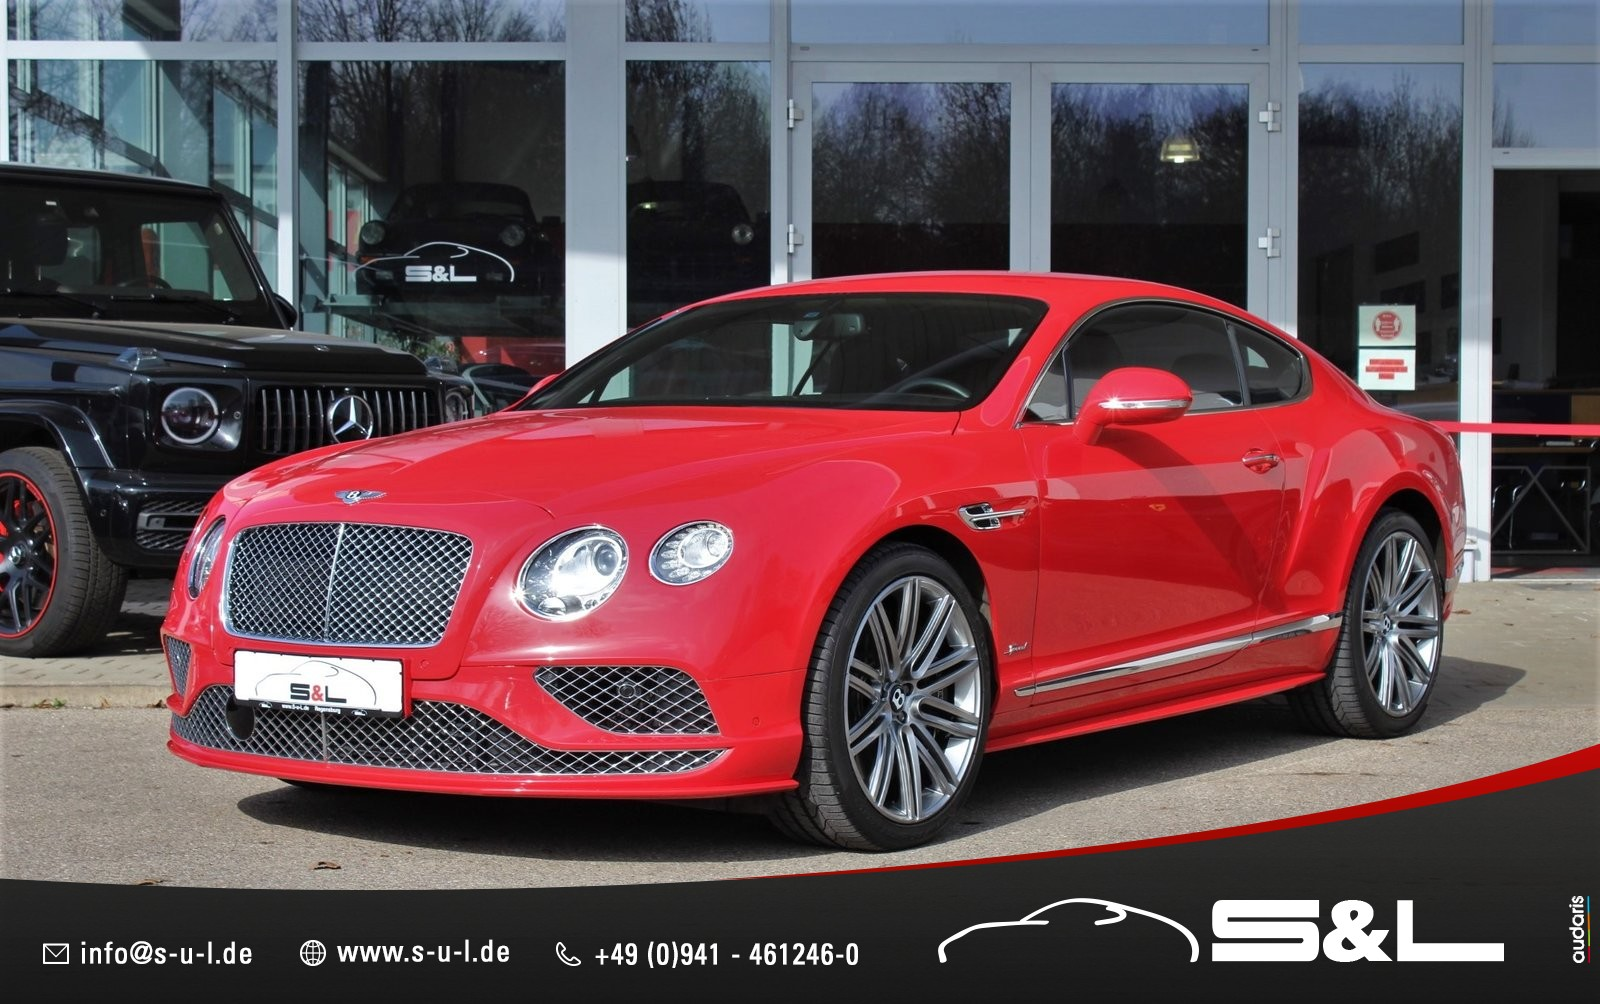 Bentley Continental GT Speed 6.0 W12 / St. James Red, Jahr 2014, Benzin